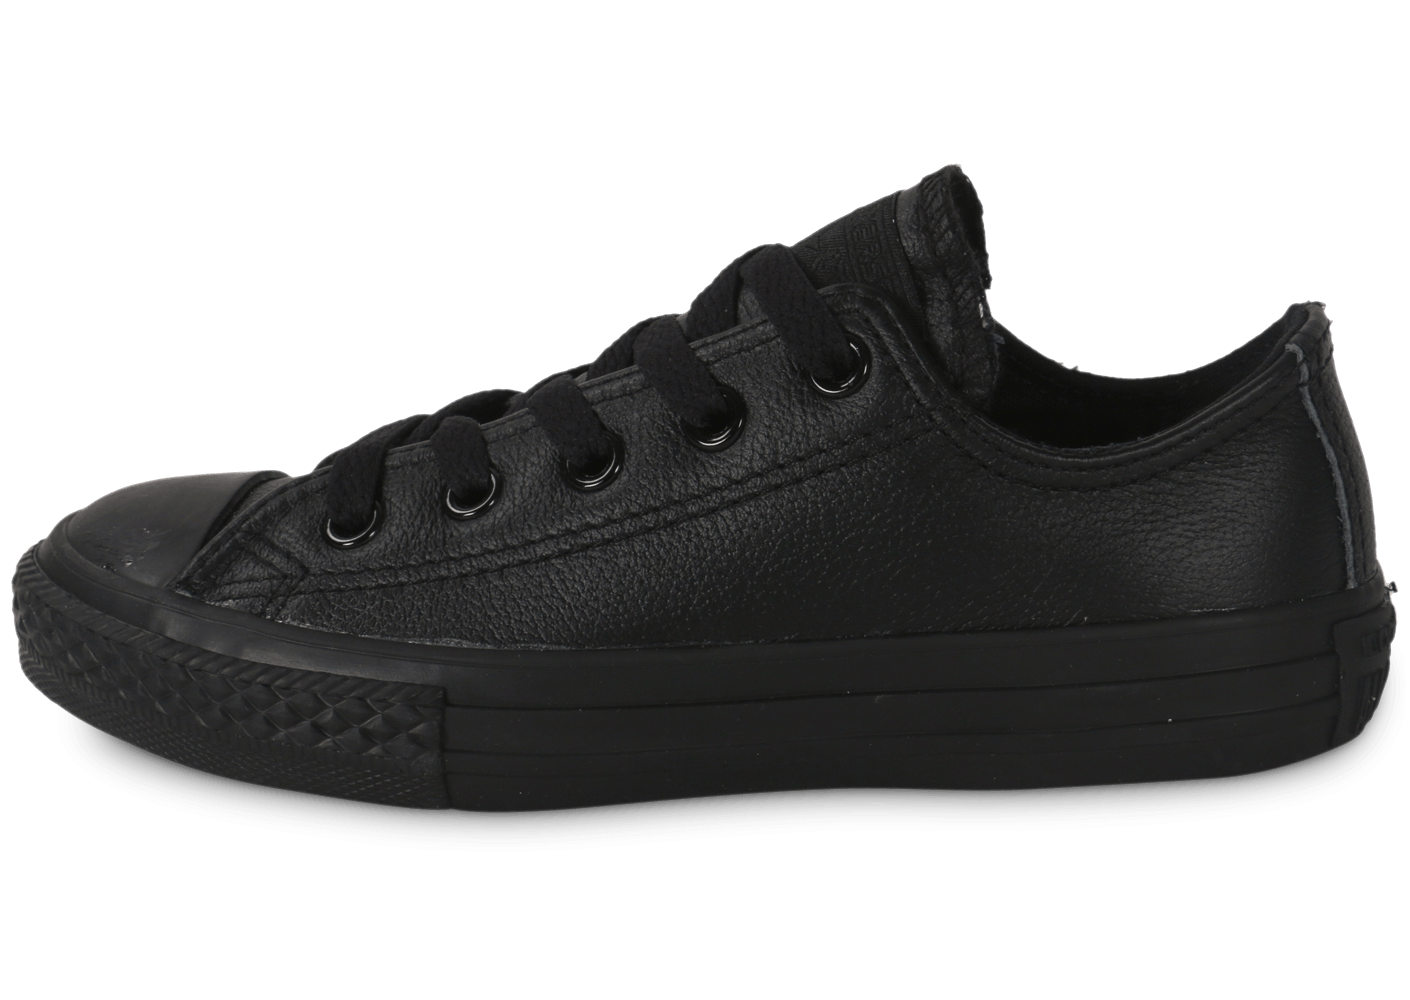 Converse Chuck Taylor All Star low enfant cuir noir